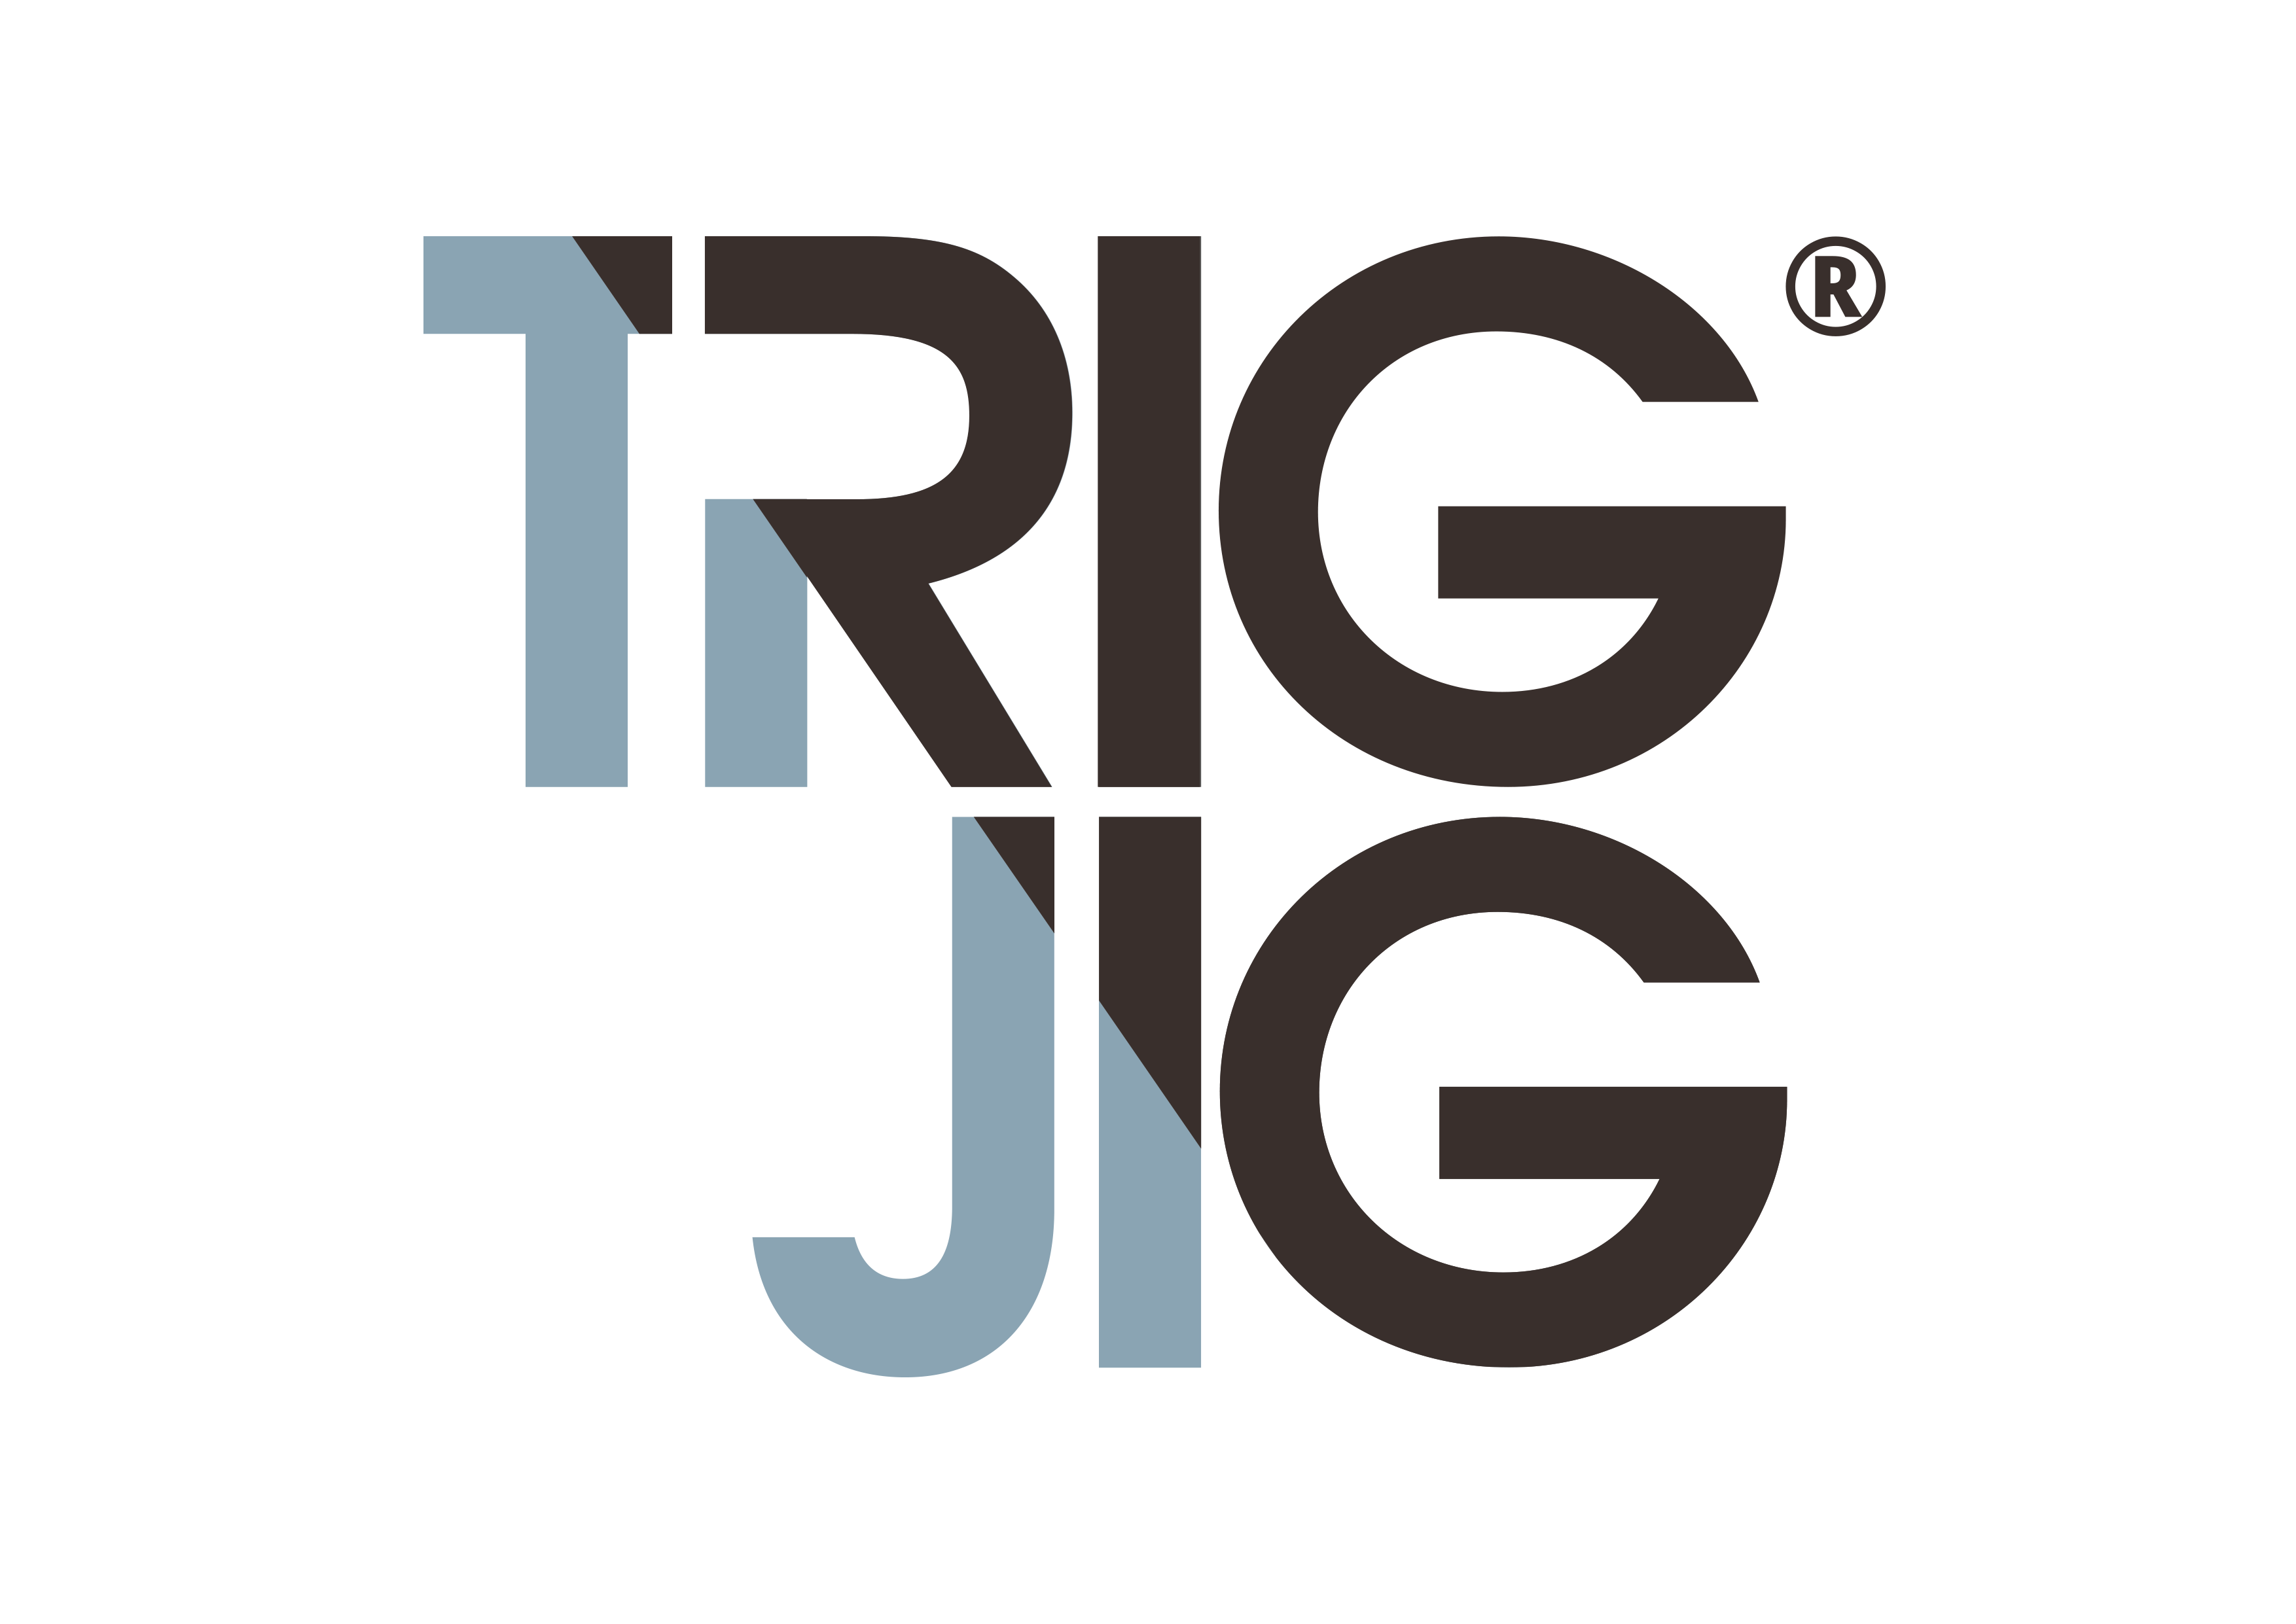 TrigJig